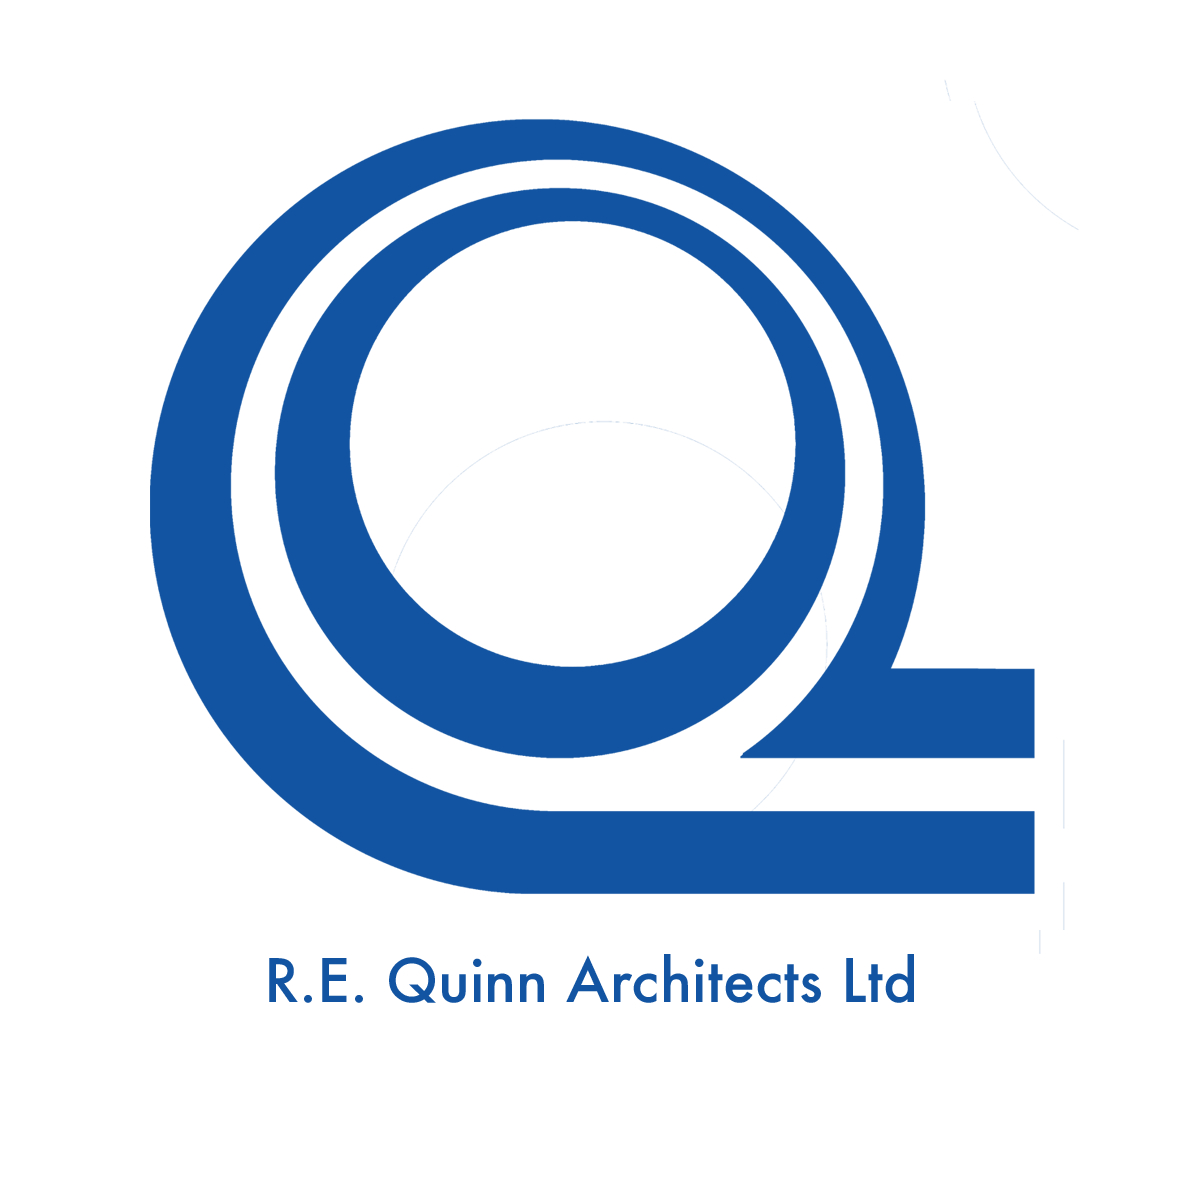 R.E. Quinn Architects Ltd